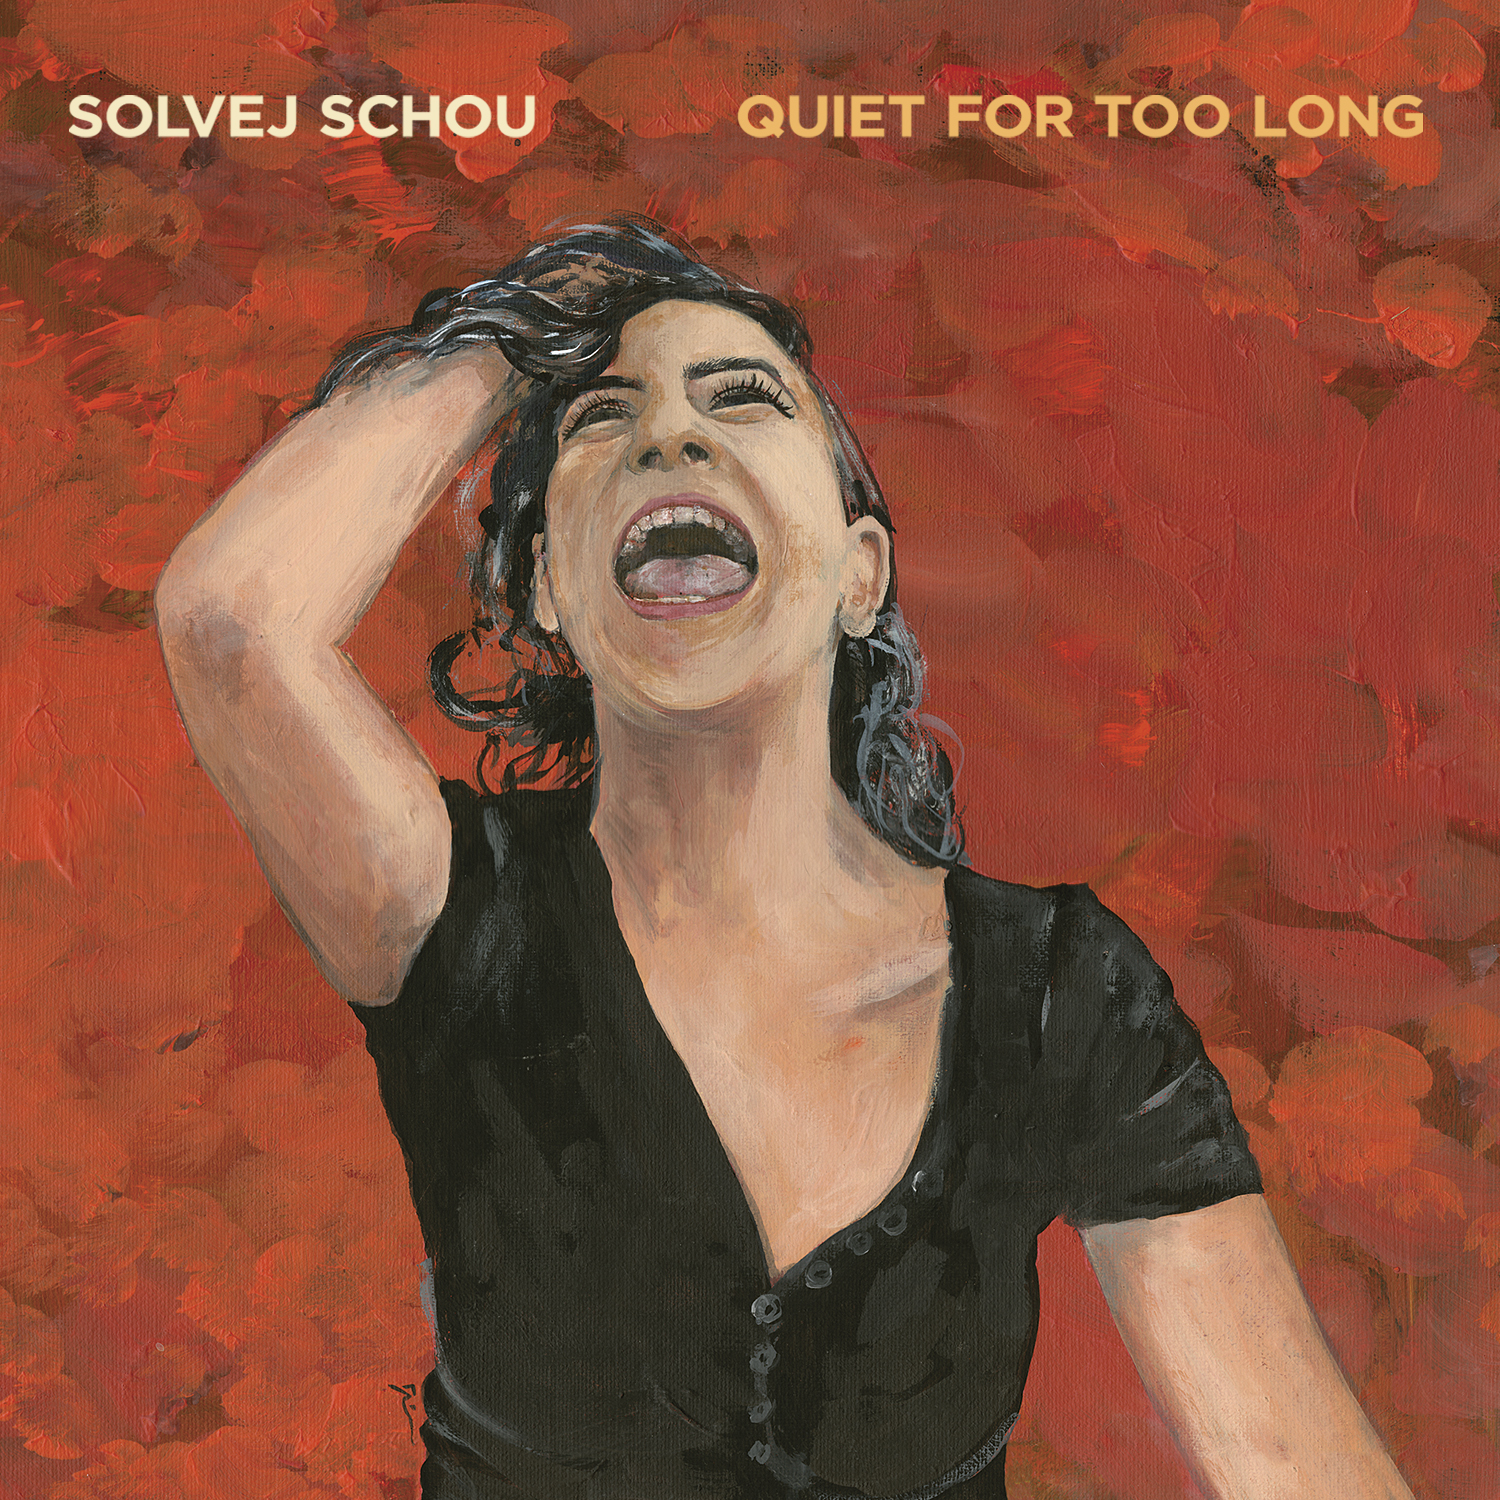 2019_Solvej_Schou_Quiet_For_Too_Long_album_cover.jpg